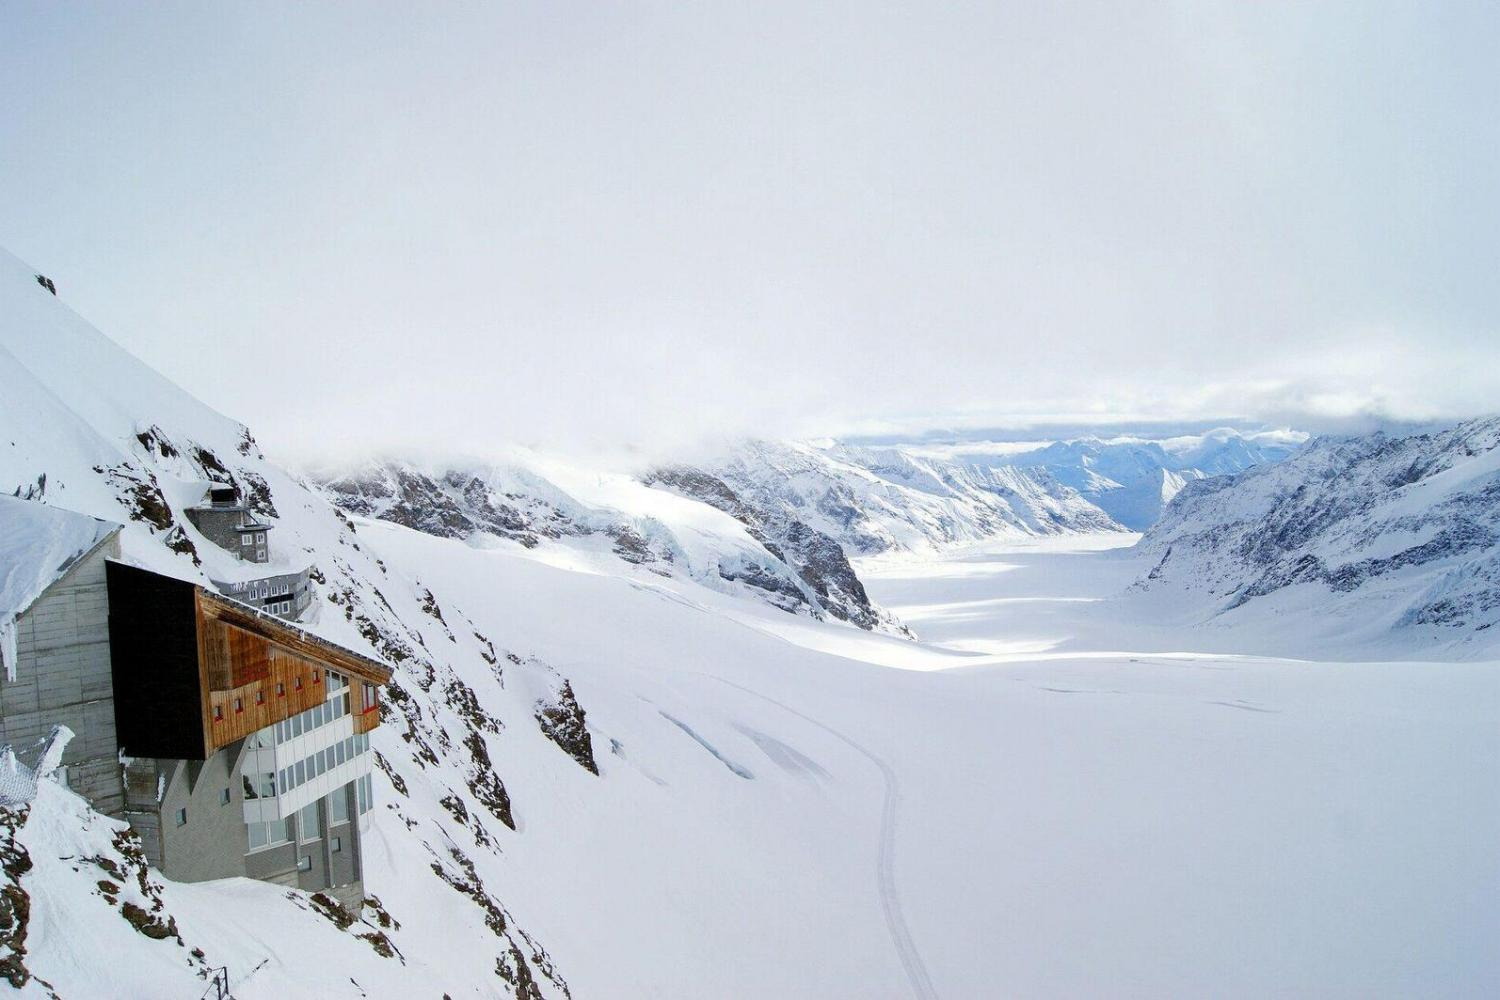 Take in the magnificent mountain views at Jungfraujoch, the highest railway station in Europe